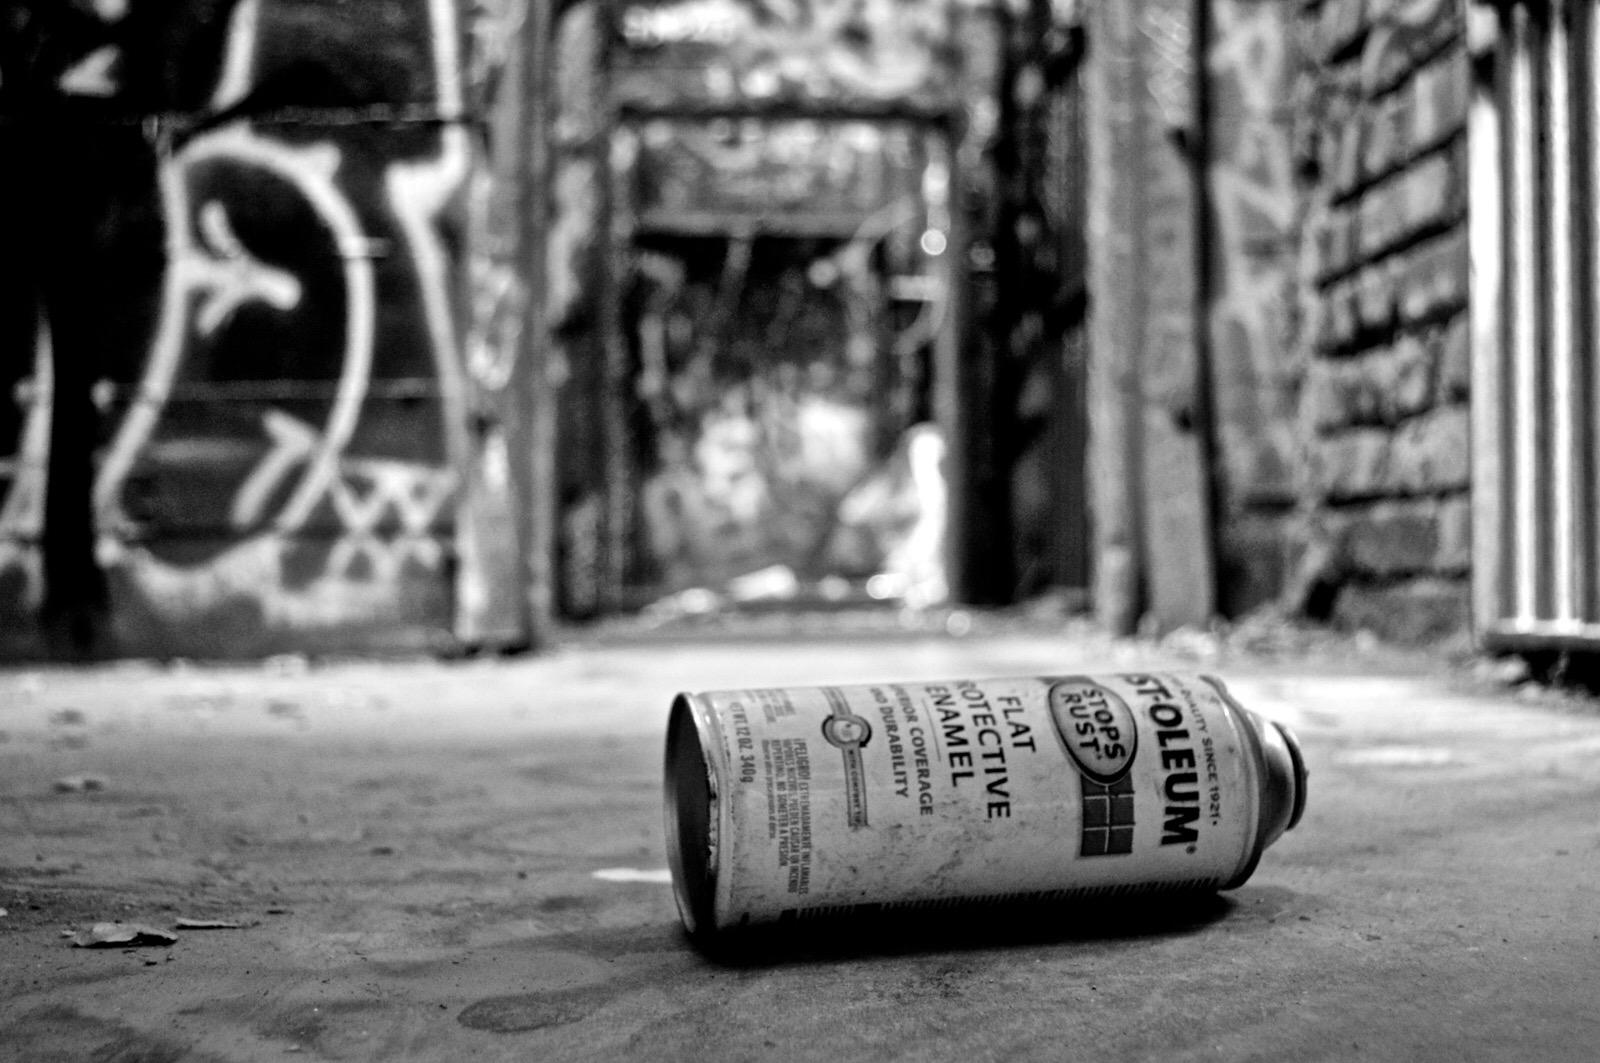 The cages of the Abandoned LA Zoo have turned into the canvas for street artists, adding life to what is now decaying. Residents of the Los Angeles area (and most of southern California) visit the old zoo to explore the ruins of what is left. The zoo was closed in 1966 but it has since been opened to the public.